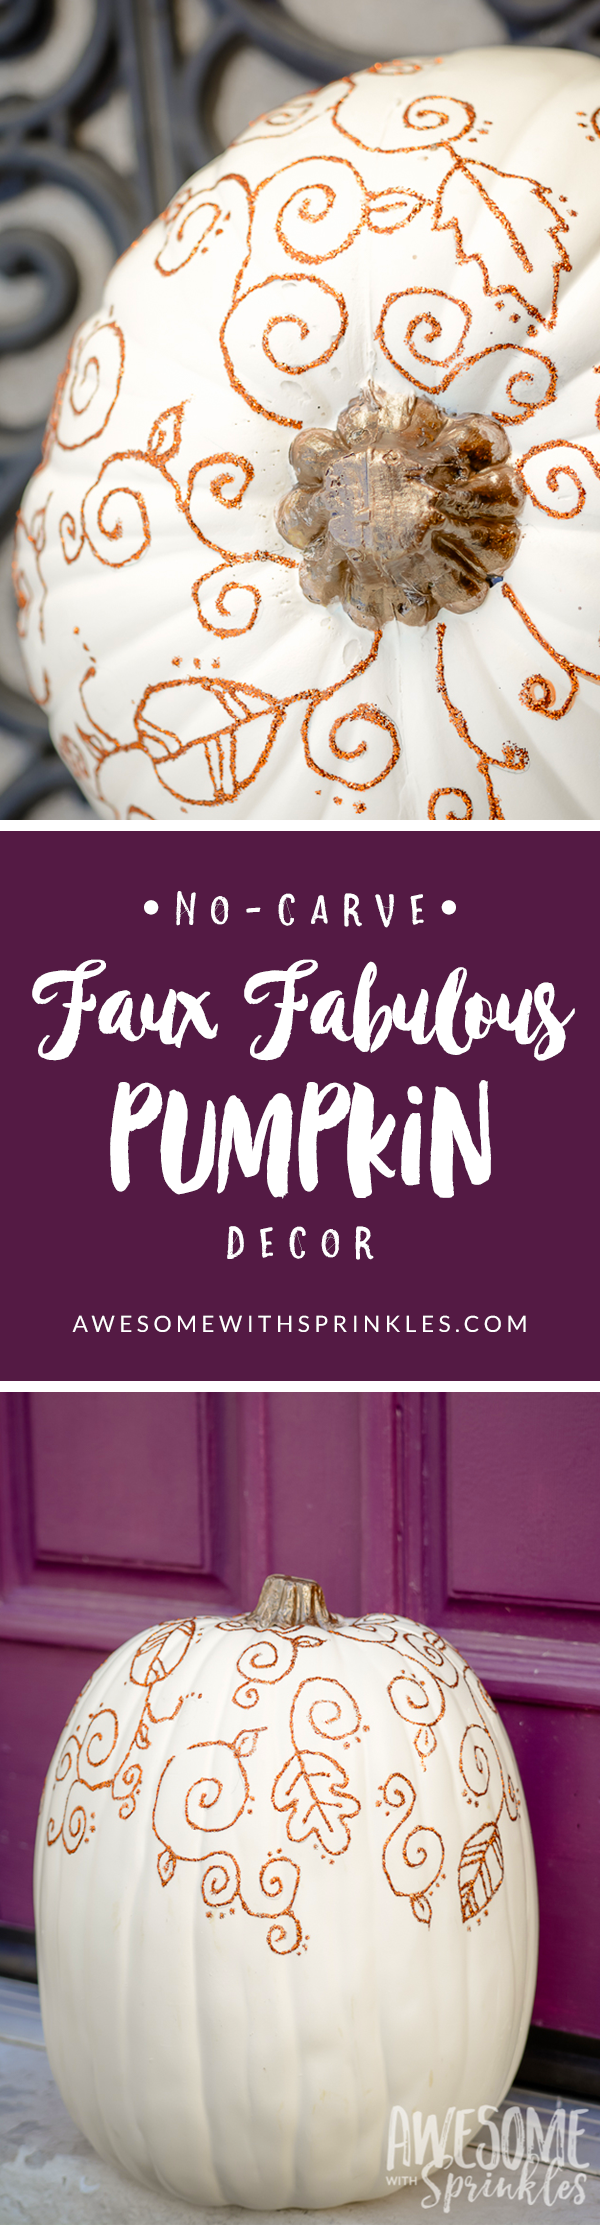 Faux Fabulous No-Carve Pumpkin Decor | Awesome with Sprinkles